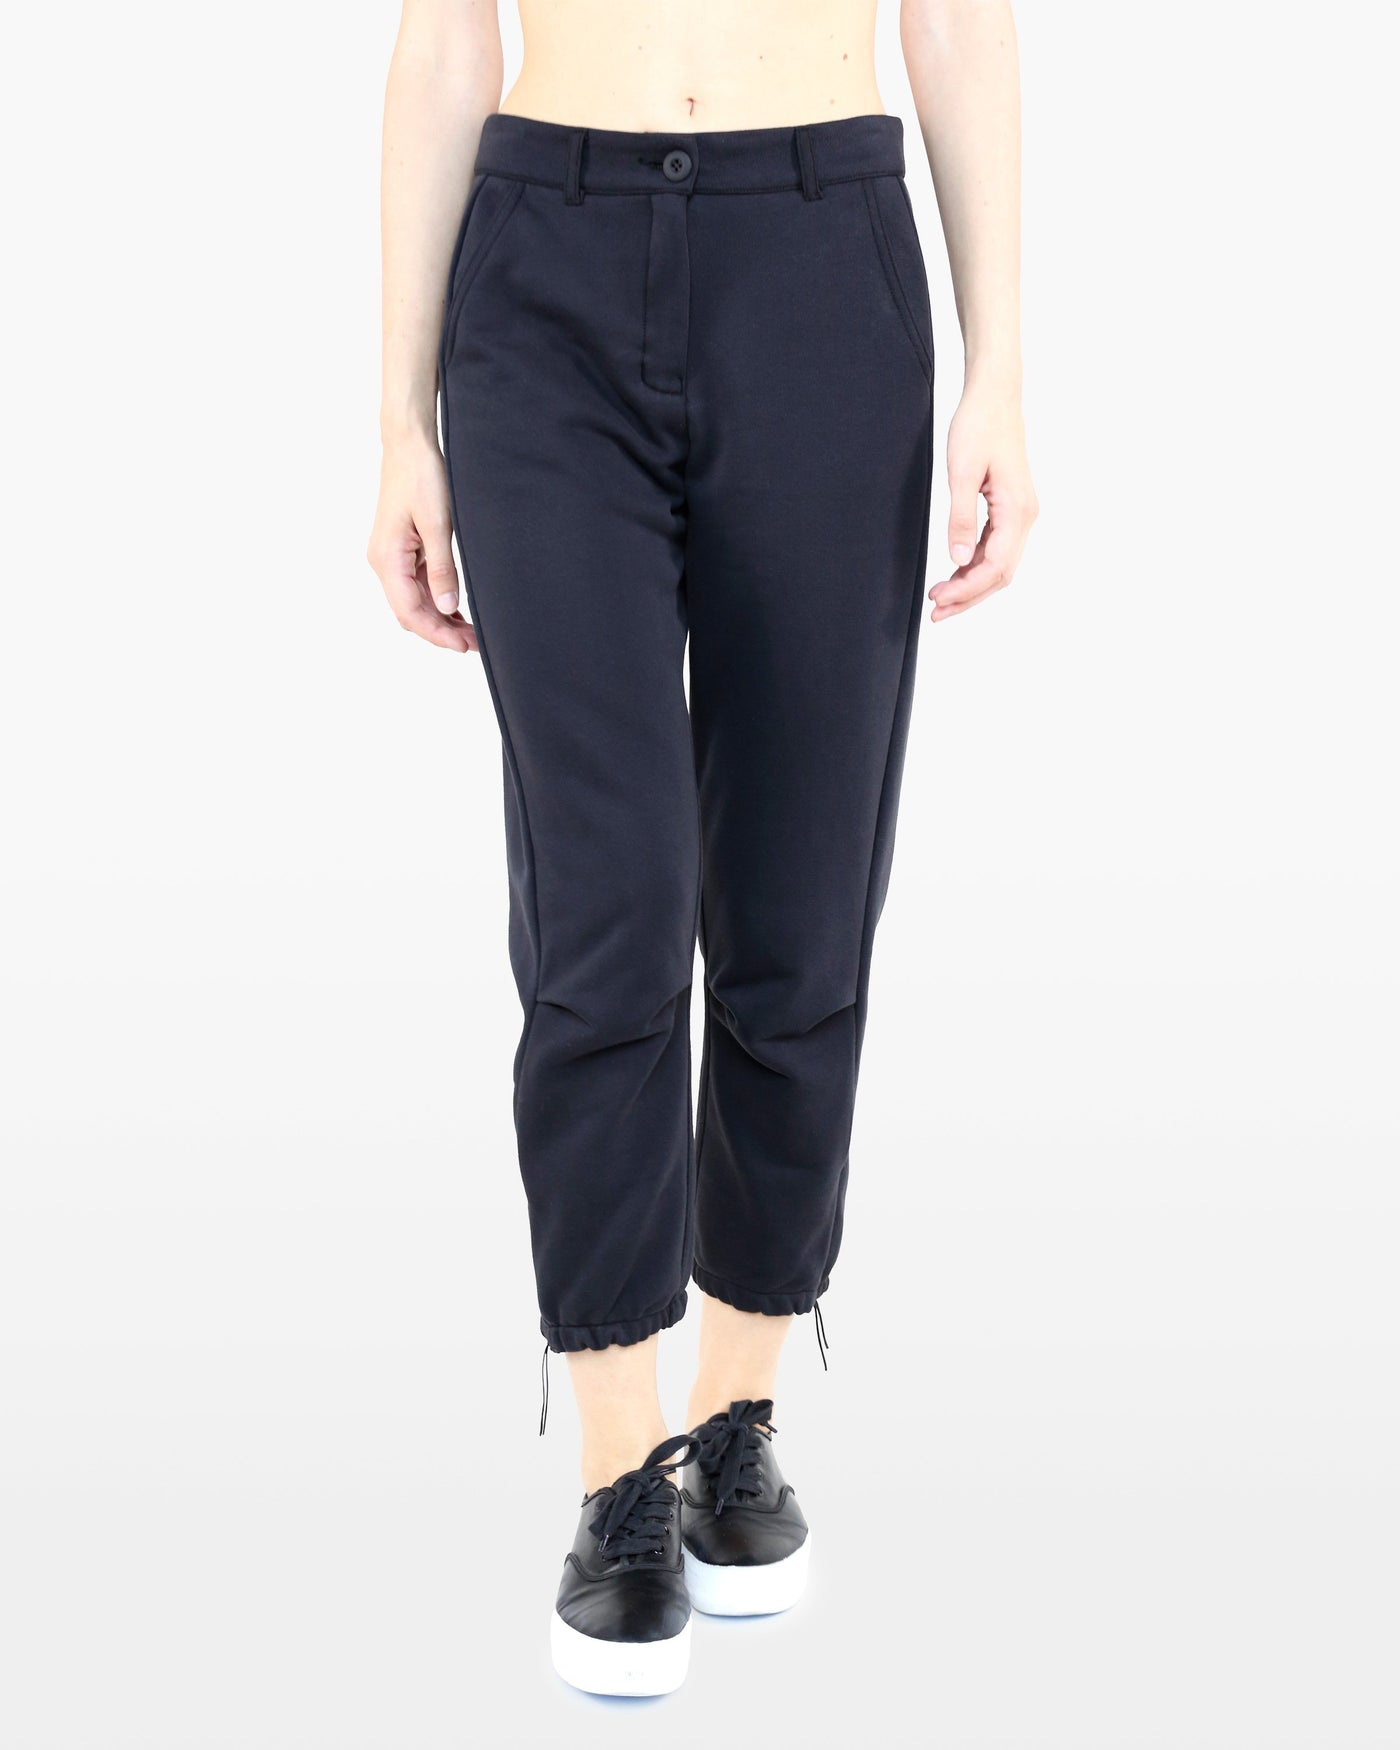 Lovelace Pant DDT in black